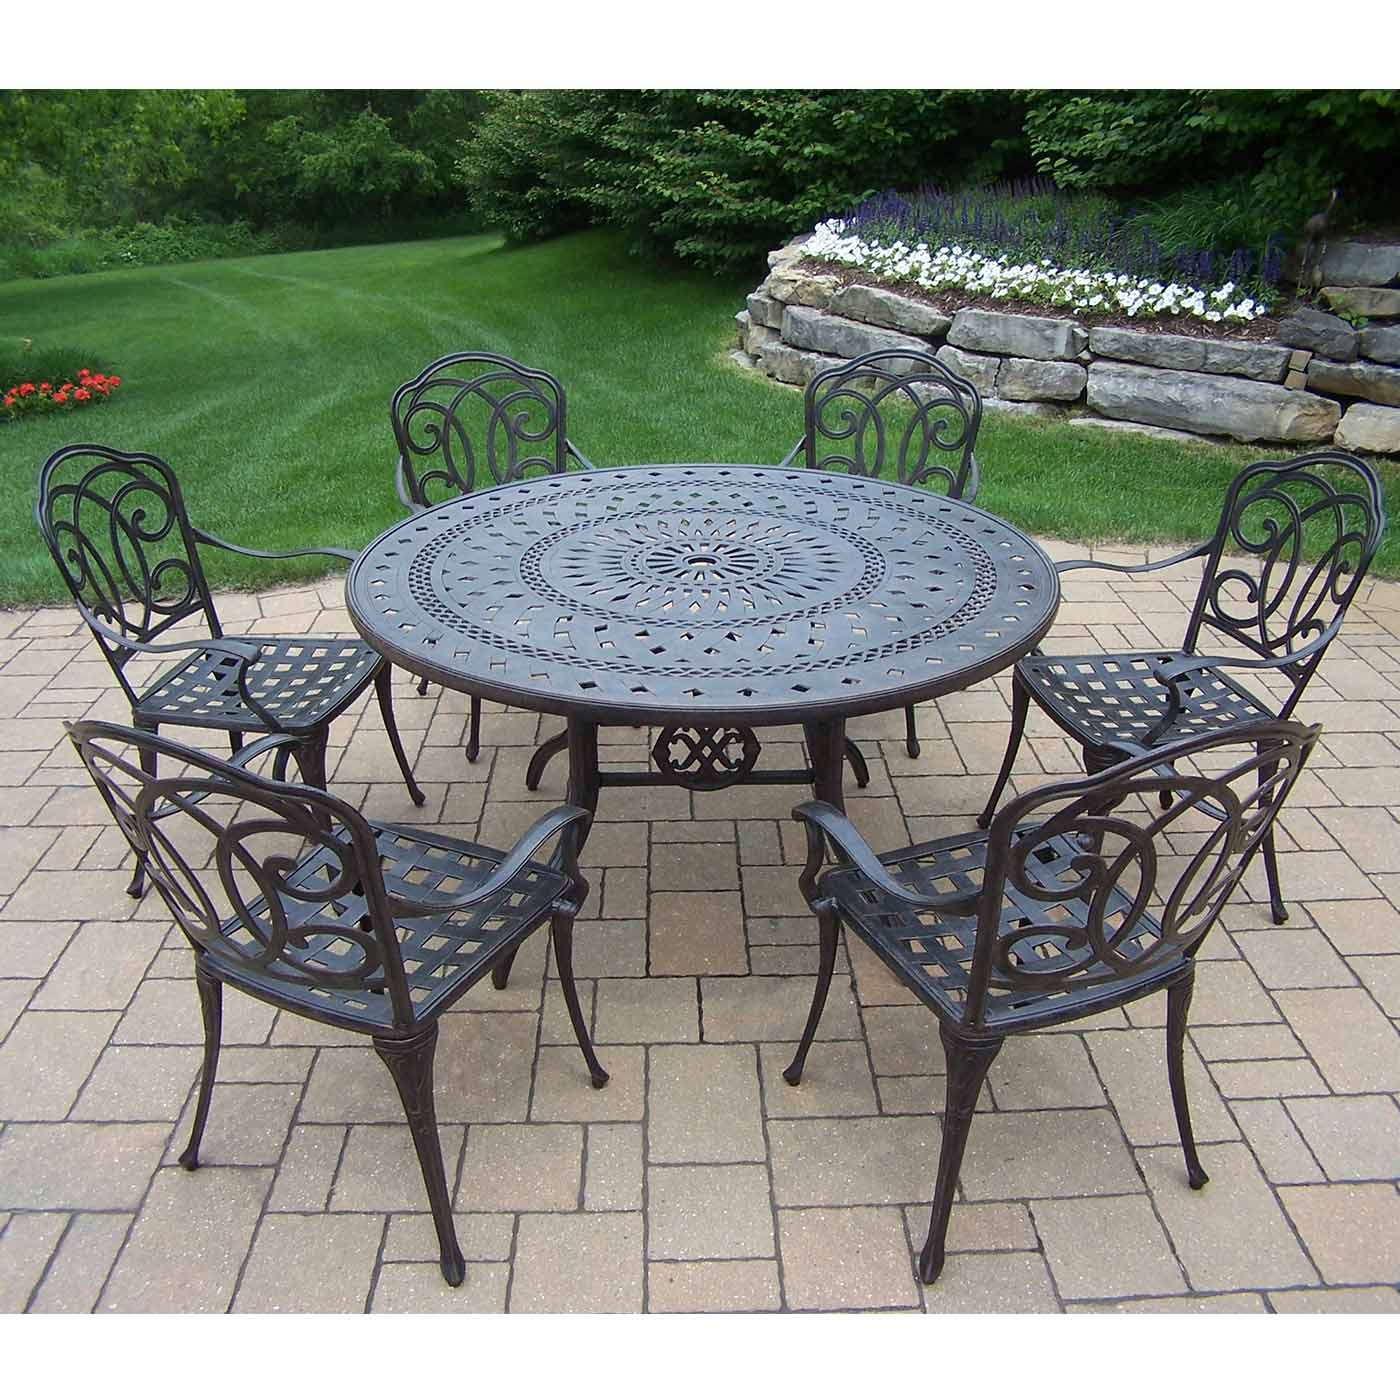 Round Table And Chairs For 6: Oakland Living Berkley 7 Piece Aged Patio Set With 54